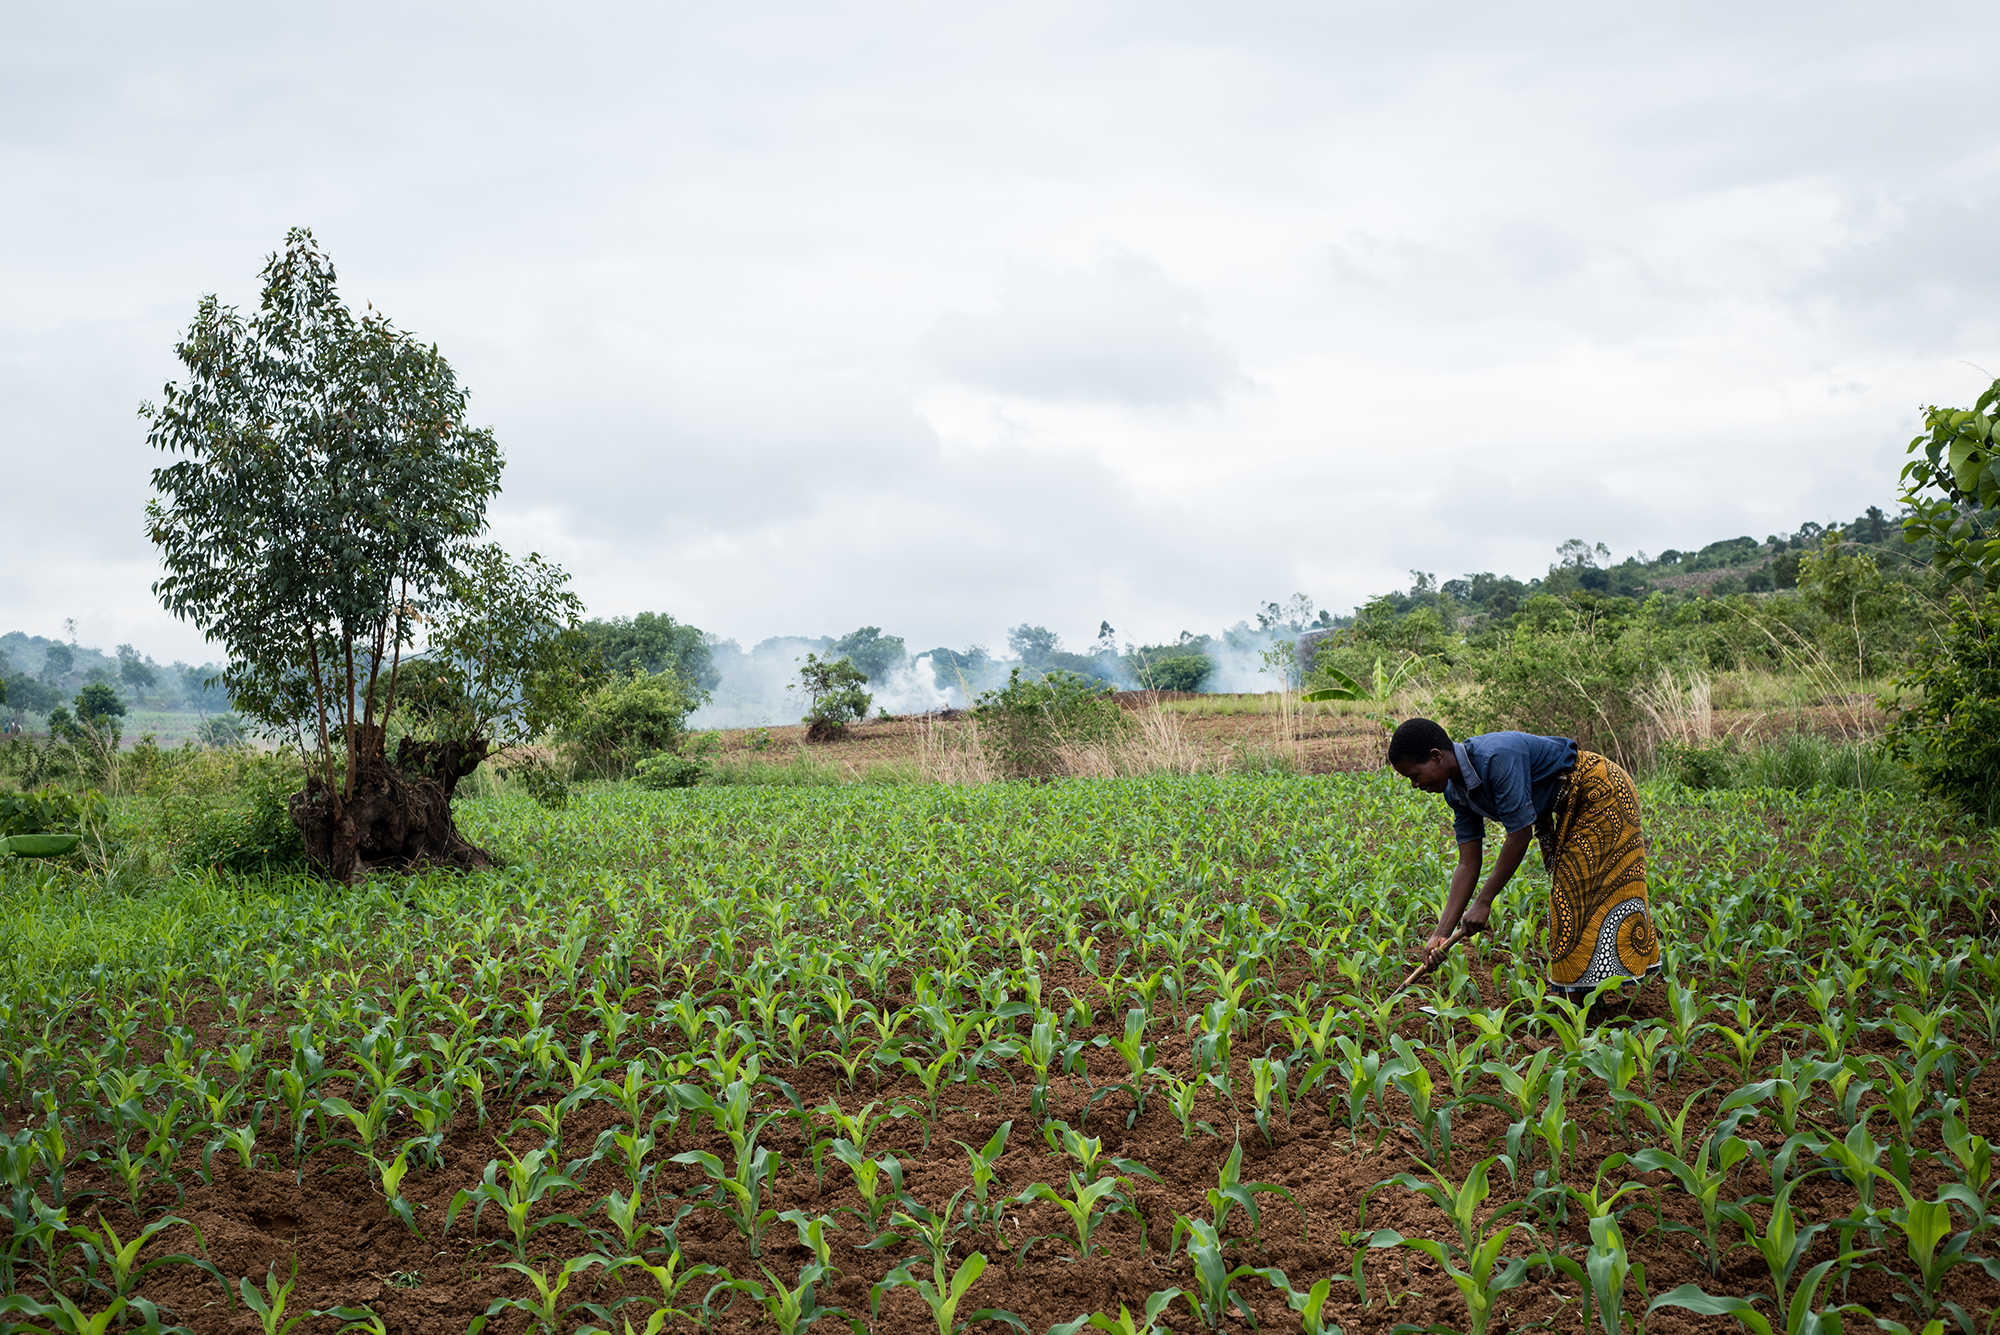 A farmer plants seed in Malawi